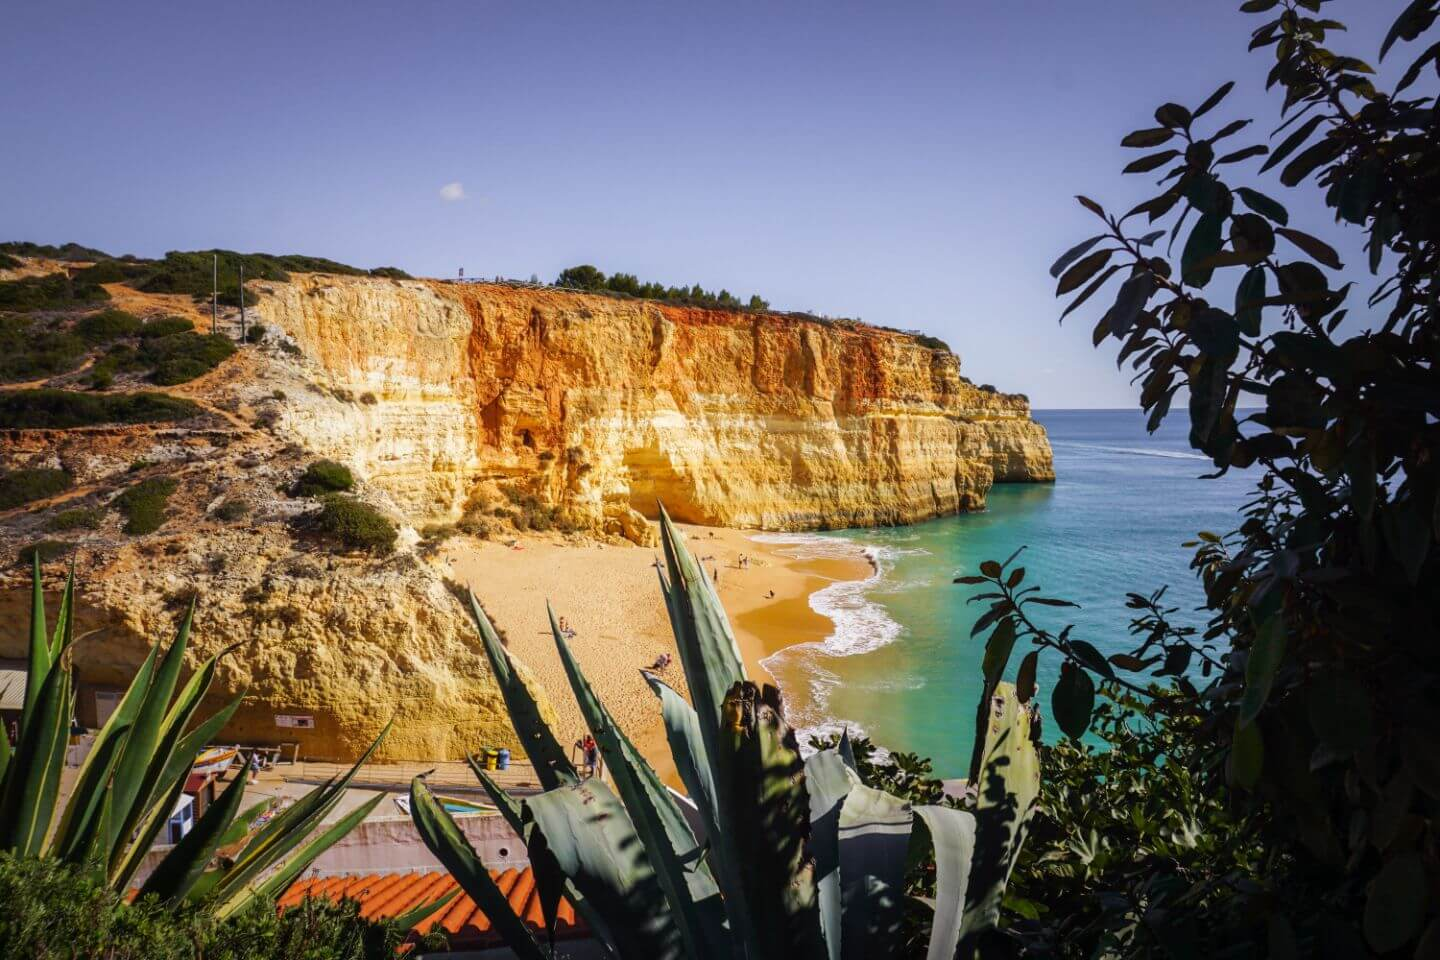 Benagil Beach, Seven Hanging Valleys Route, Algarve, Portugal